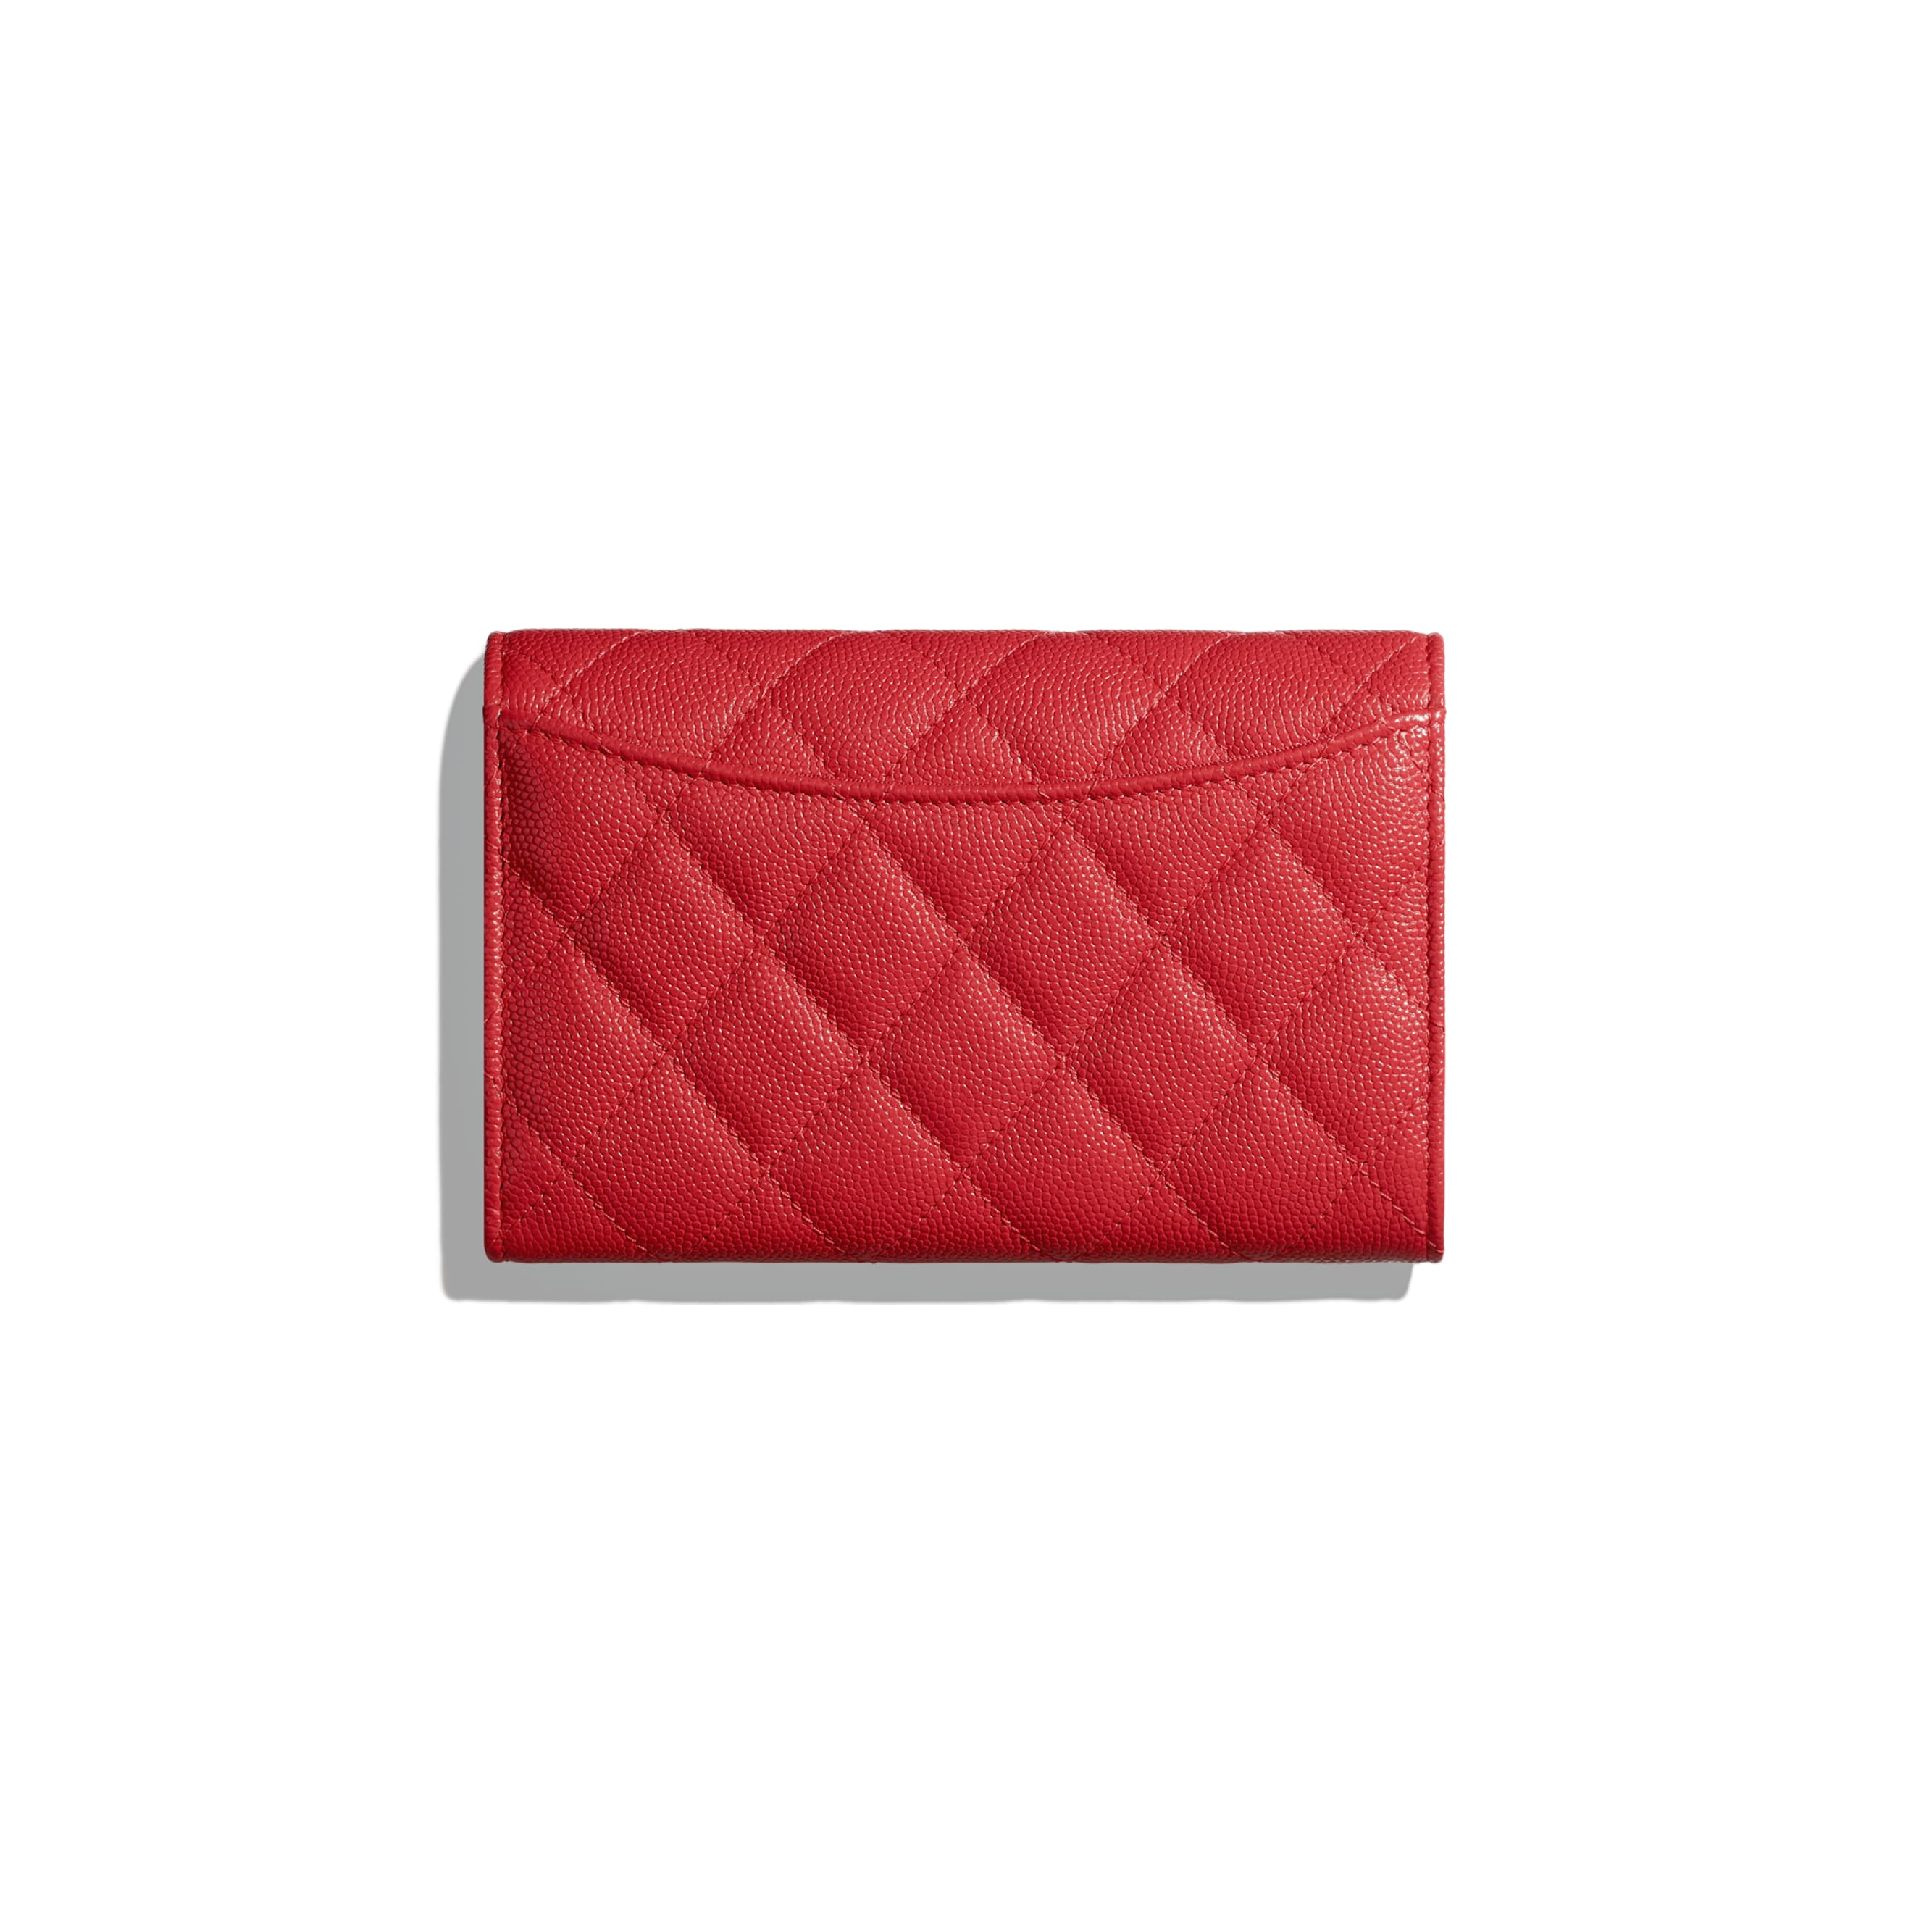 Classic Flap Wallet - Red - Grained Calfskin & Gold-Tone Metal - CHANEL - Alternative view - see standard sized version